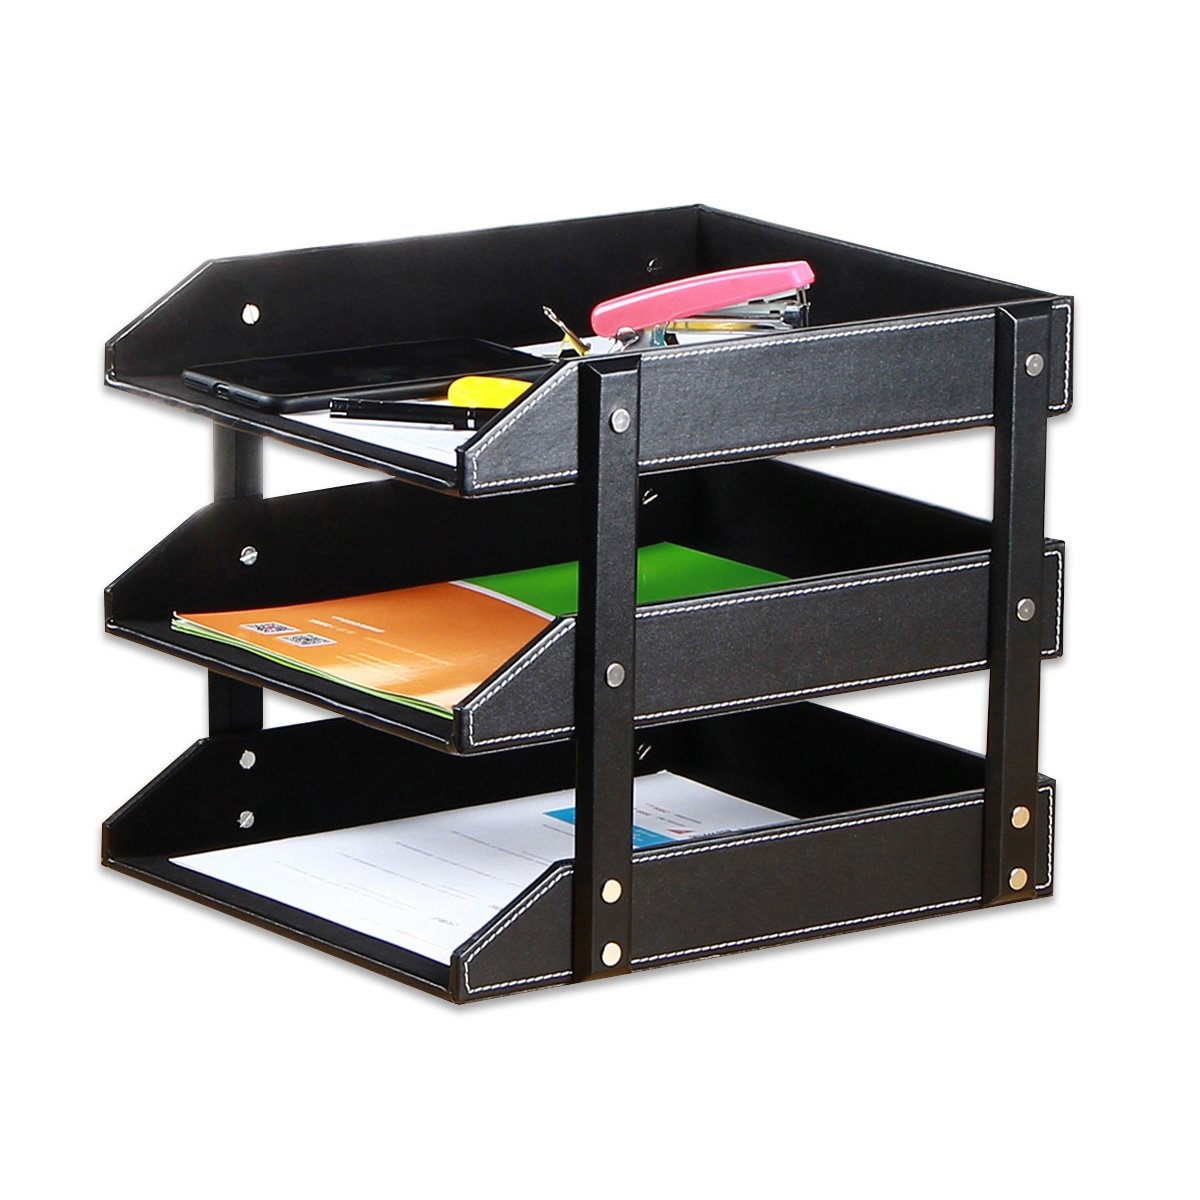 Stacking Letter Trays Leather Office Desk Supply Organizer, 3-Tier Files Sorter Workplace Desktop Storage Holder for Document/Paper/Stationery/Magazine/Newspaper/Mail/Sundries (Black) by YAPISHI